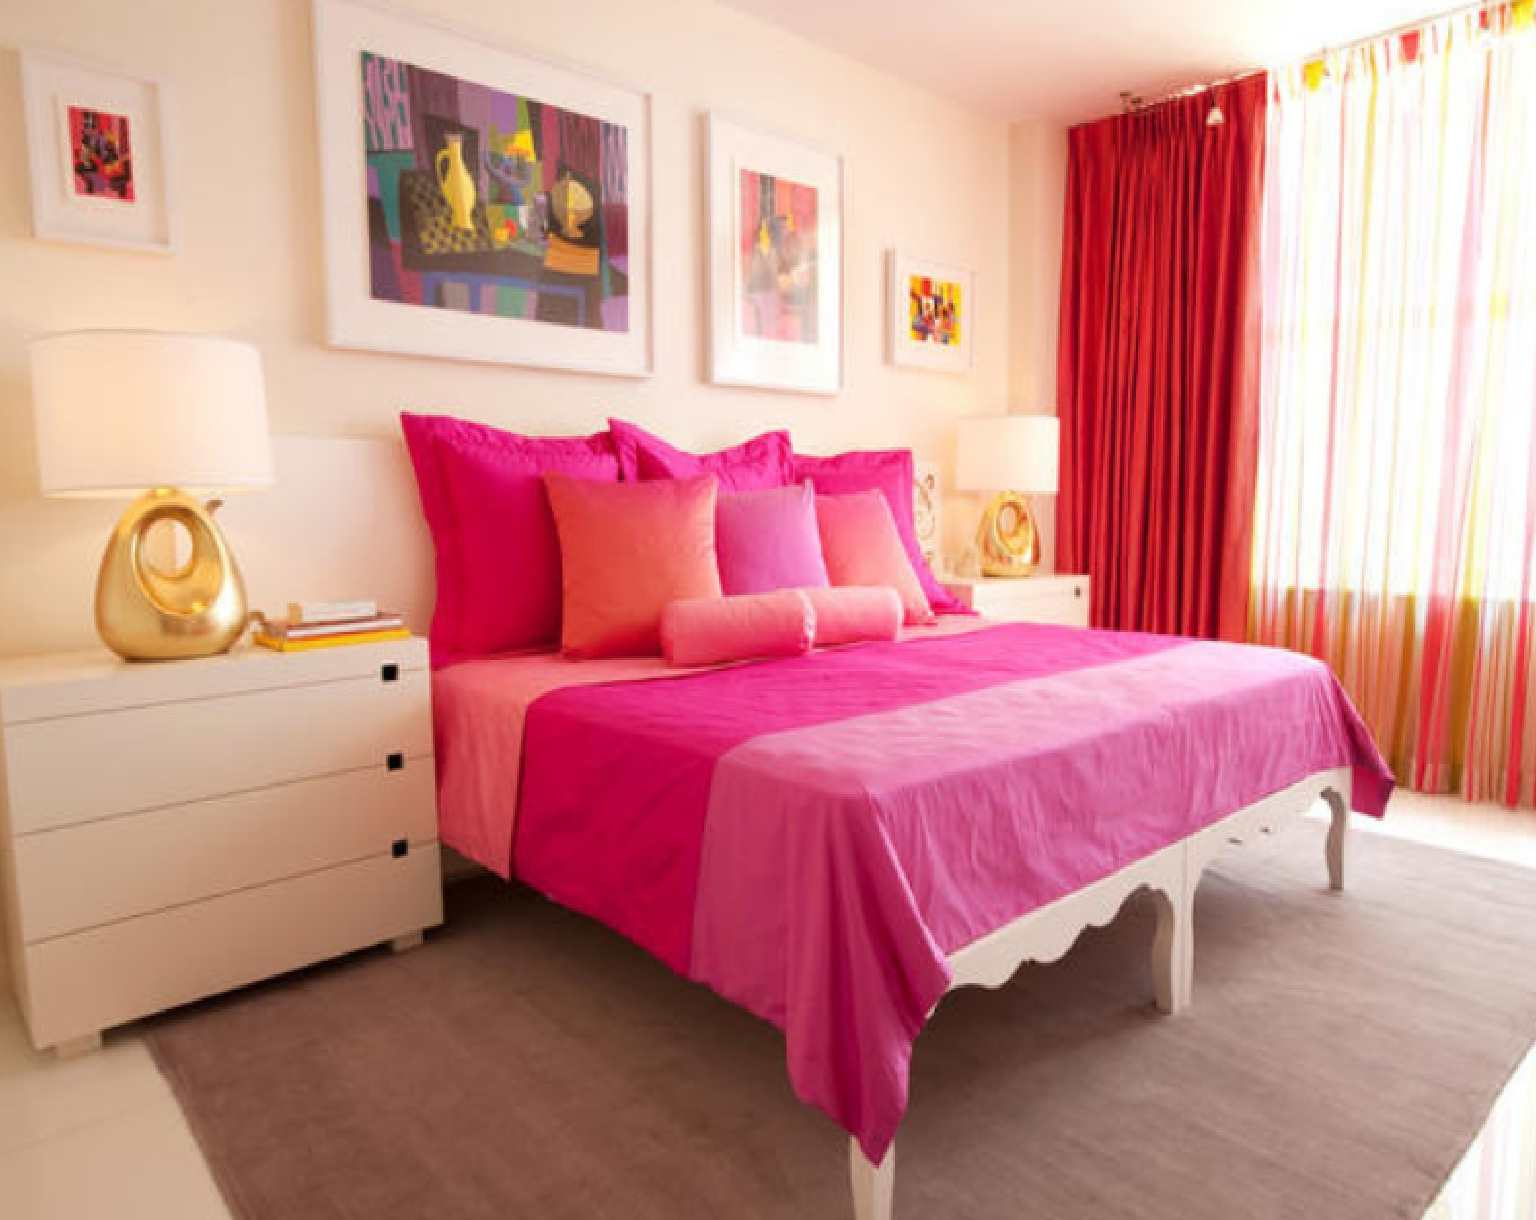 women bedroom ideas for young adults - Bedroom Decorating Ideas For Young Adults